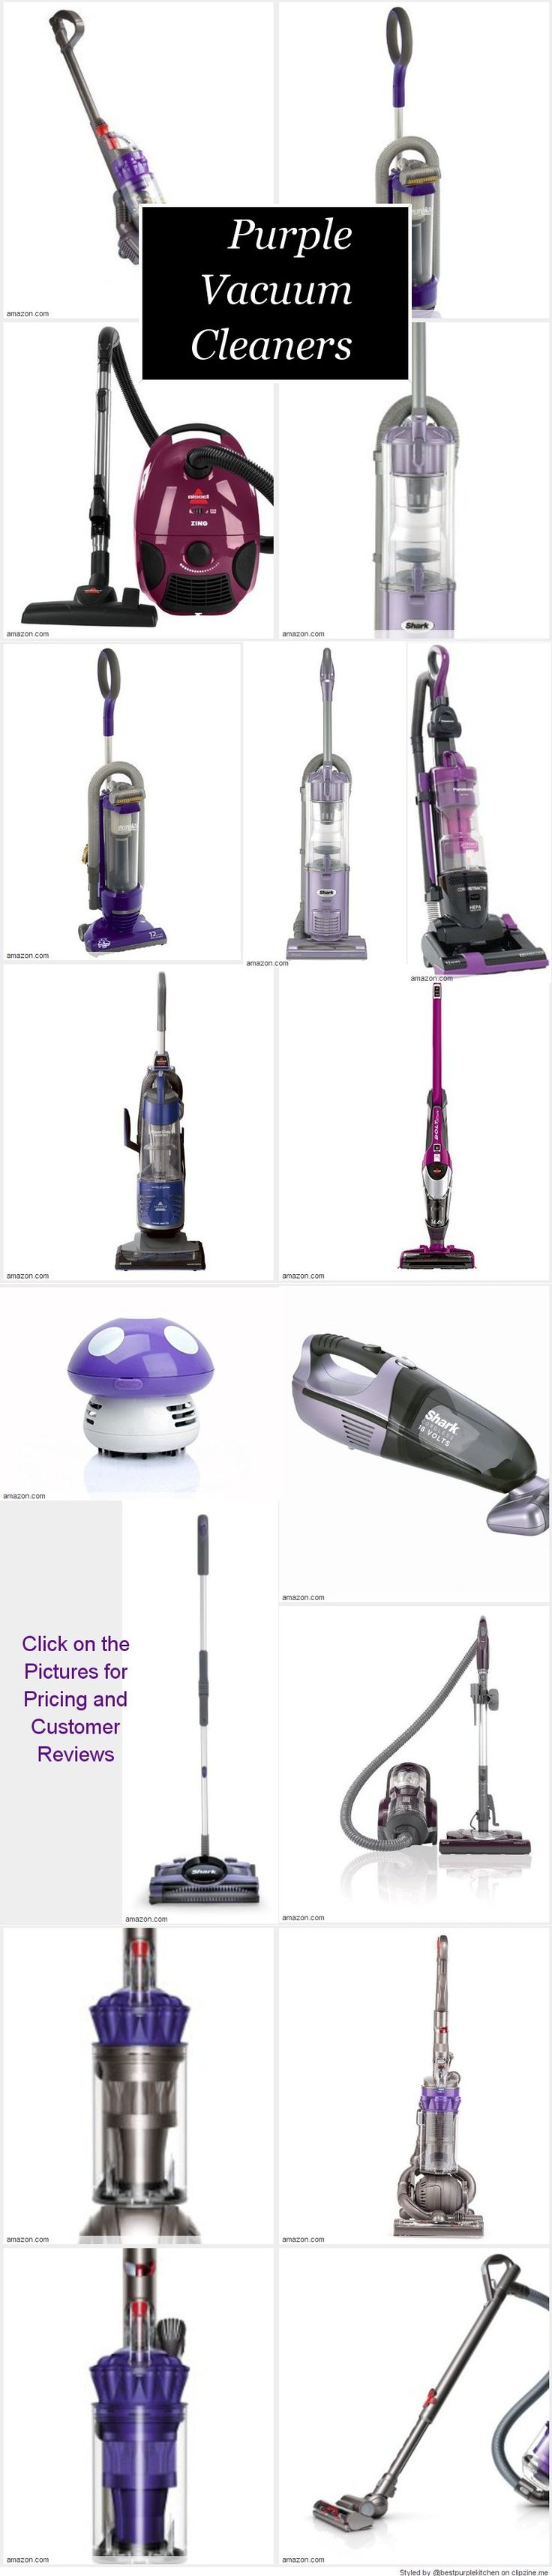 14 Best Images About Purple Vacuum Cleaner Upright